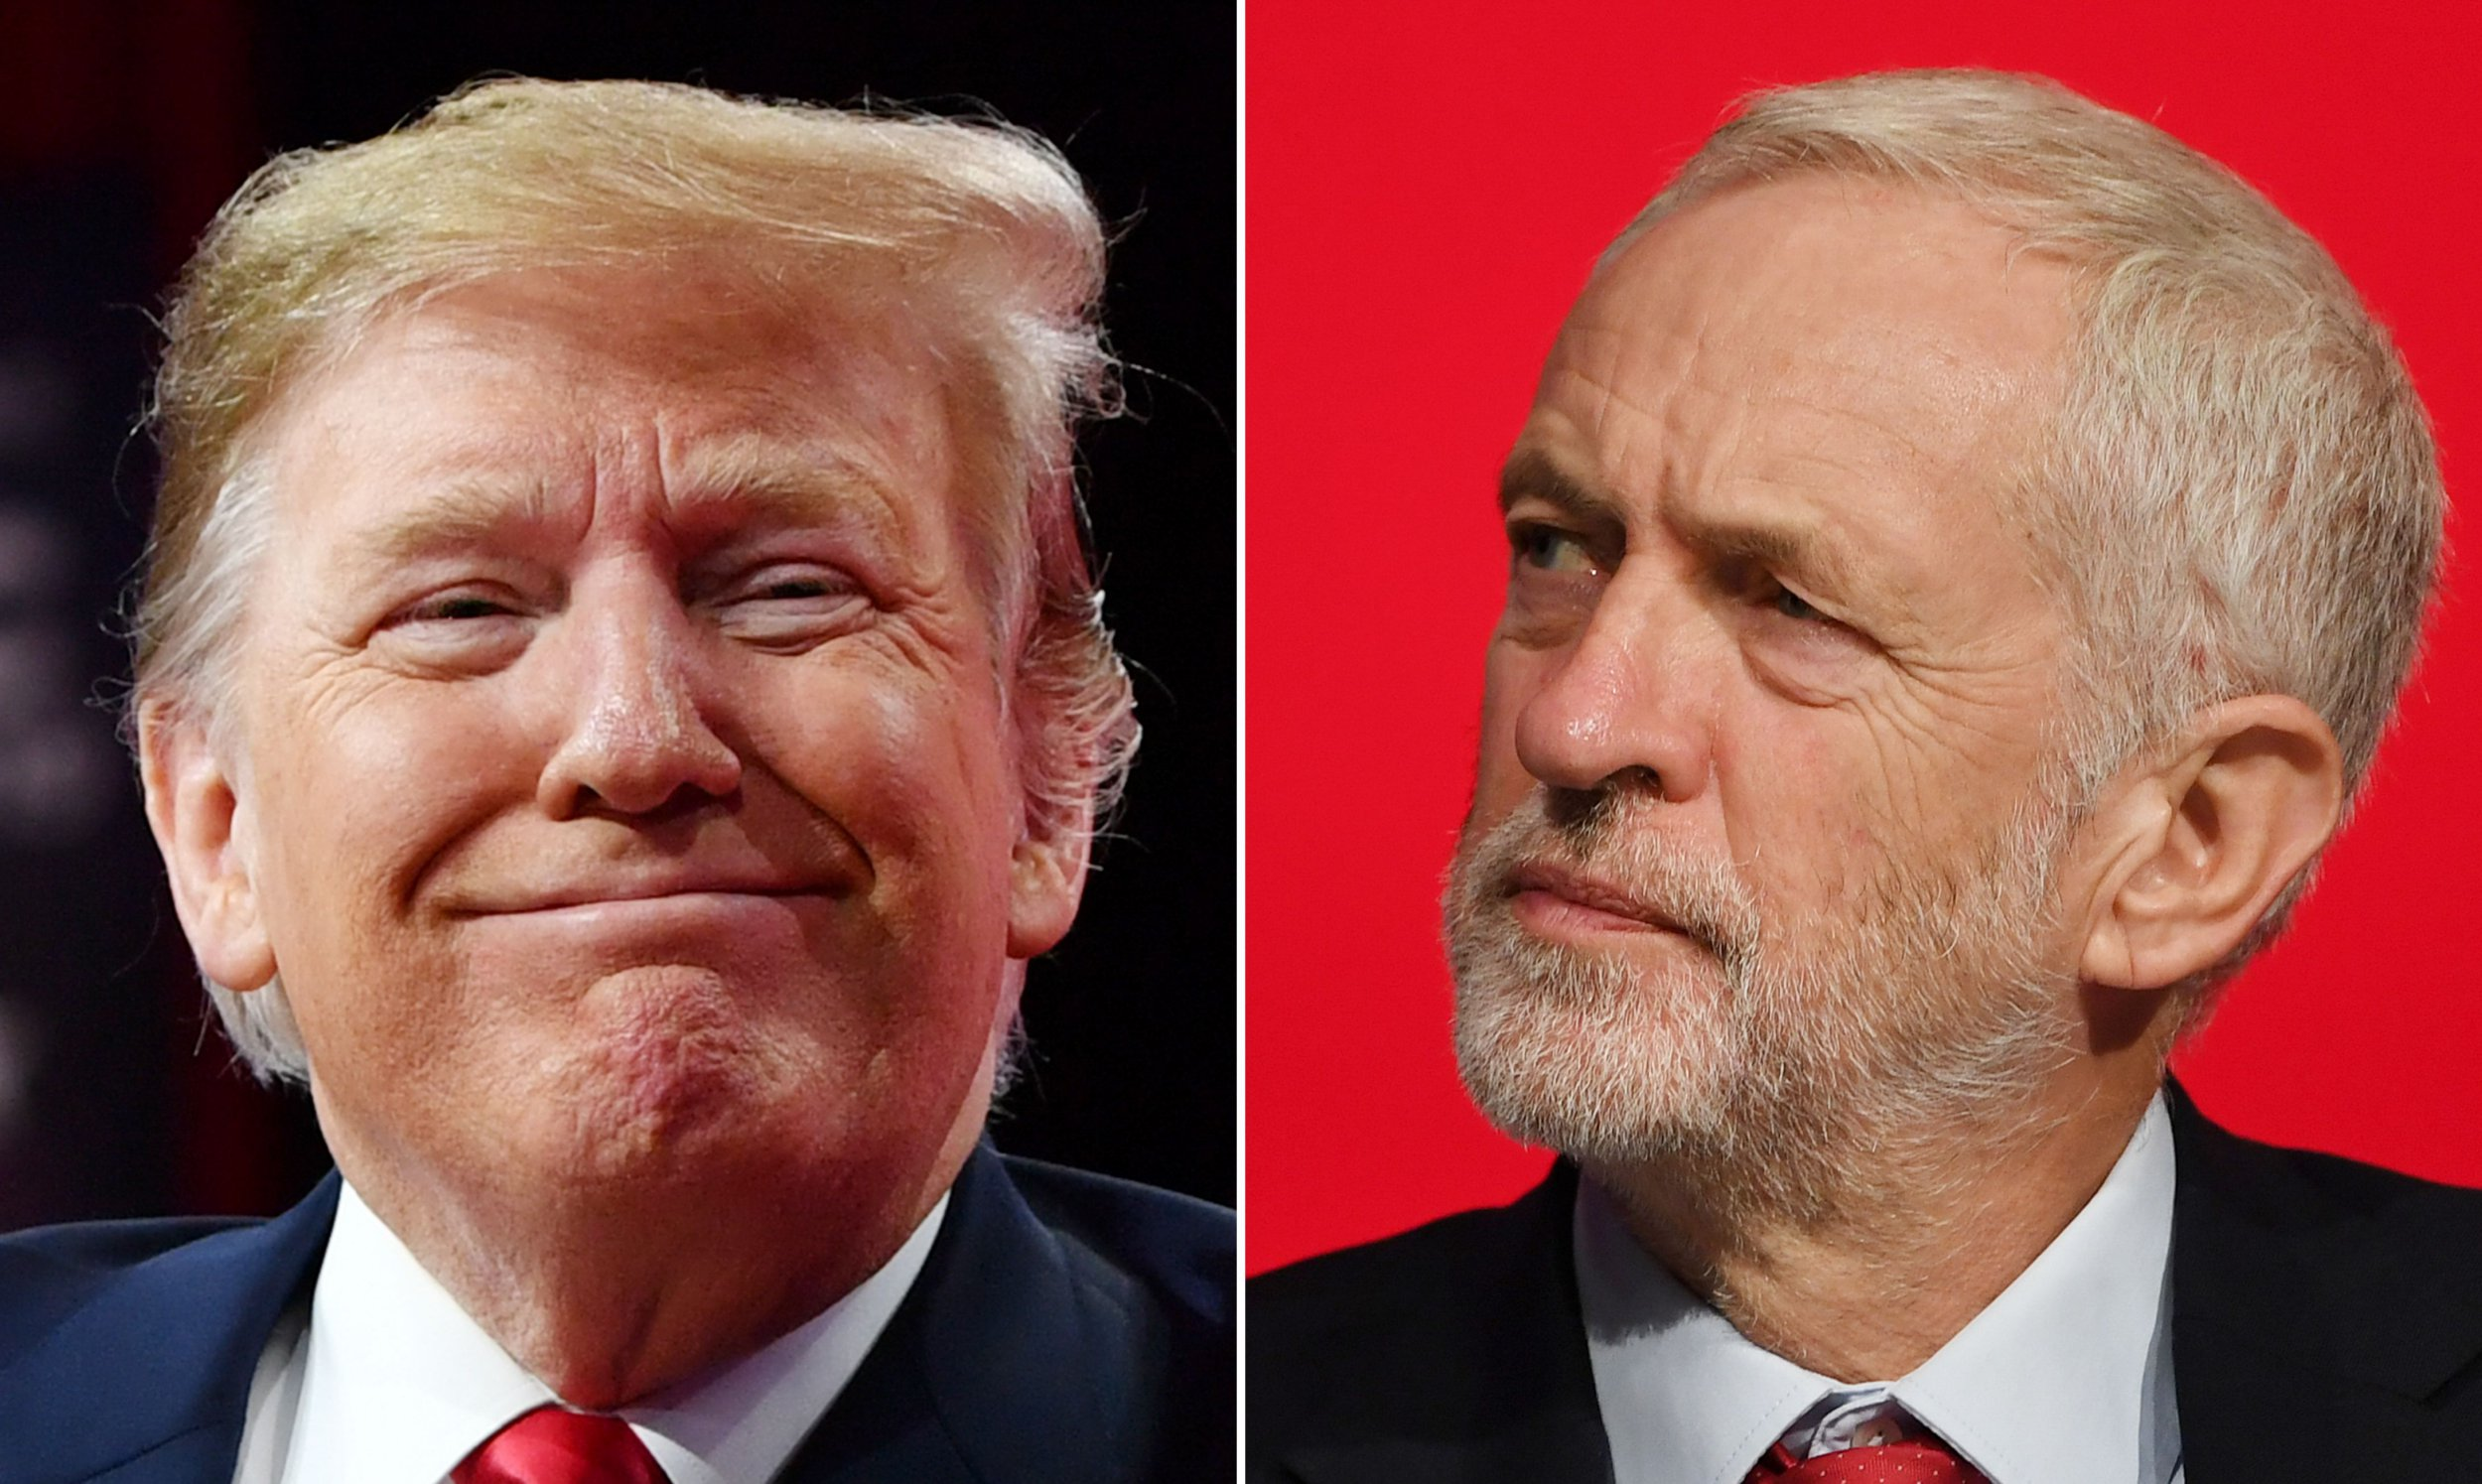 Jeremy Corbyn refuses to attend state banquet for Donald Trump